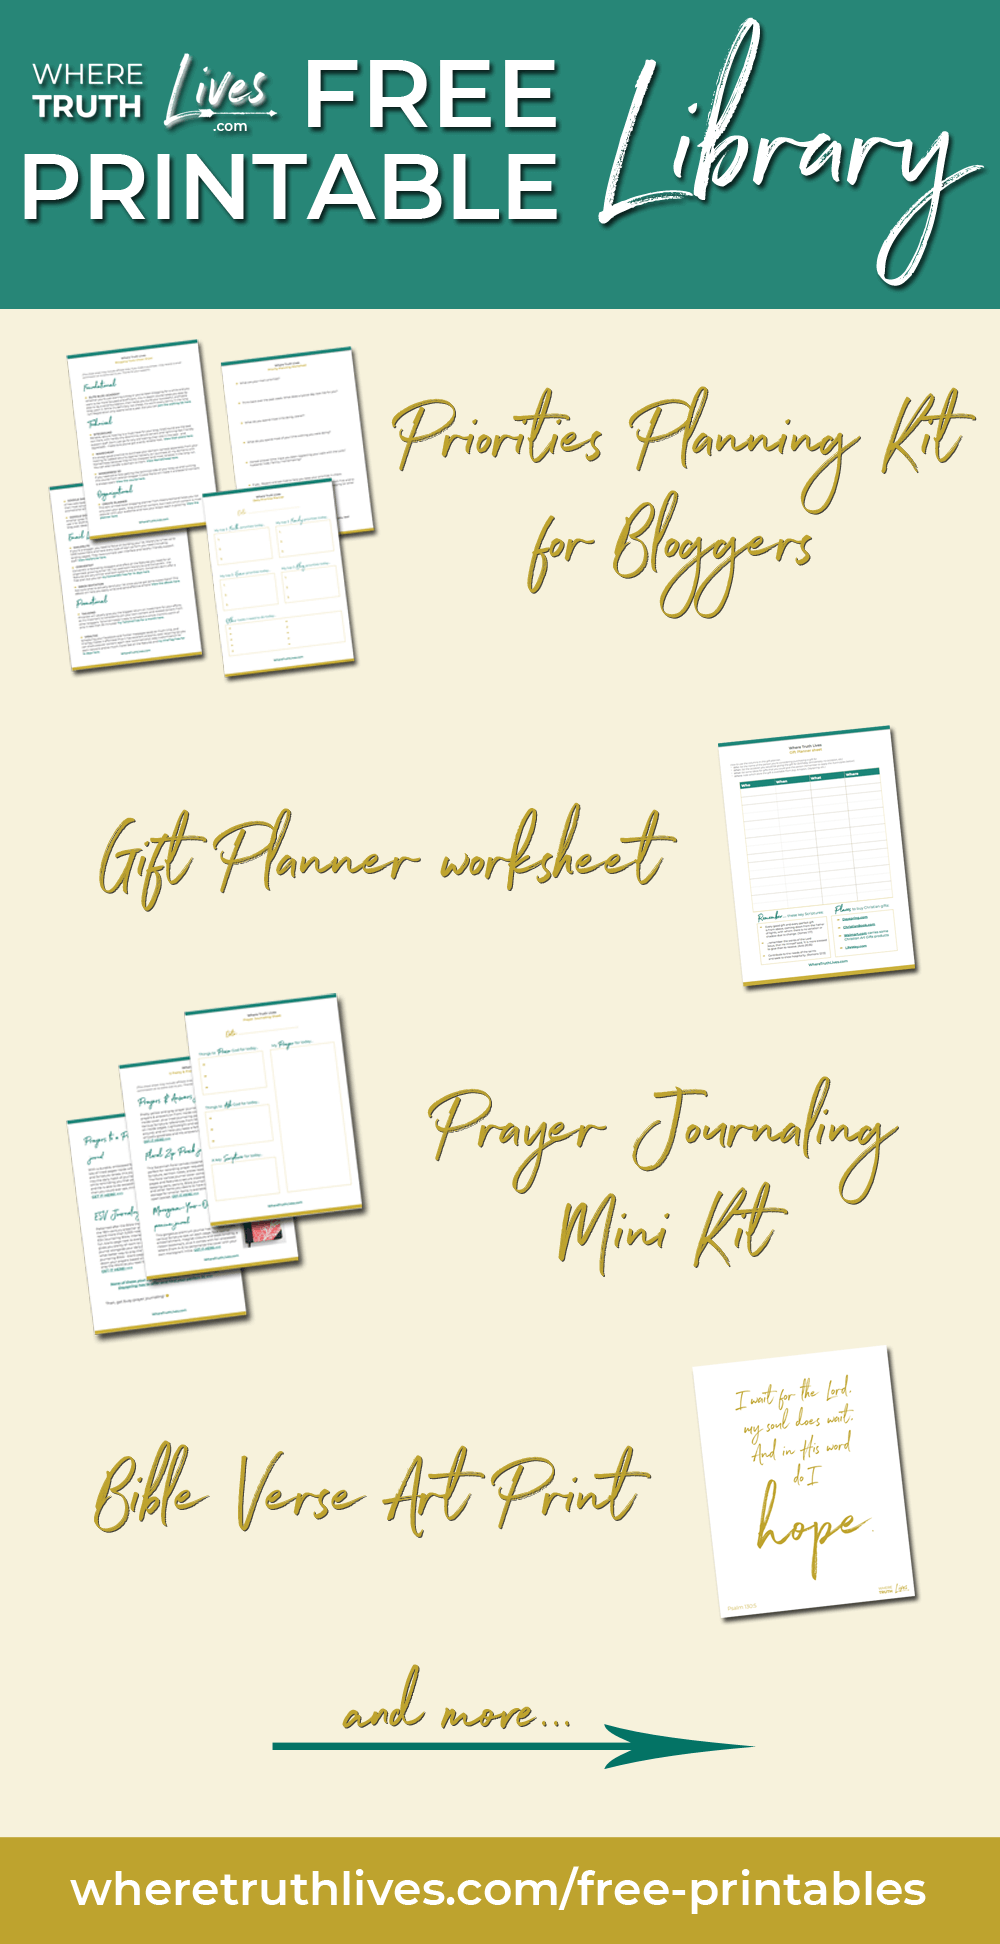 Free Printables for Christian women who want to impact the world by living the Word.